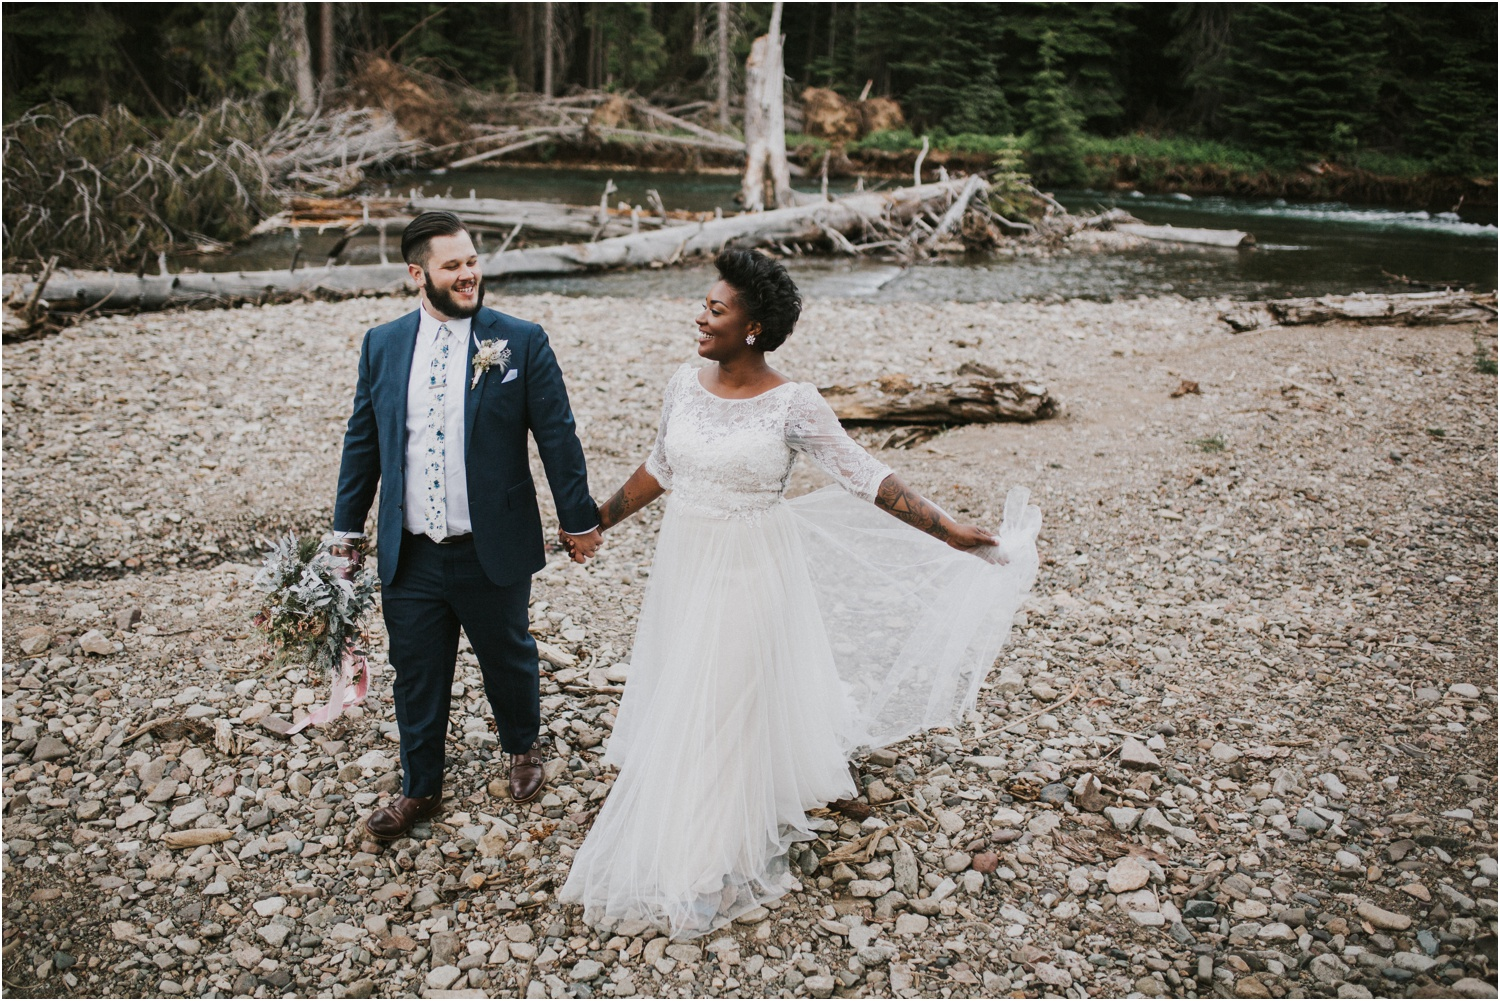 lovestoriesco-amber-phinisee-seattle-mount-rainier-elopement_0079.jpg